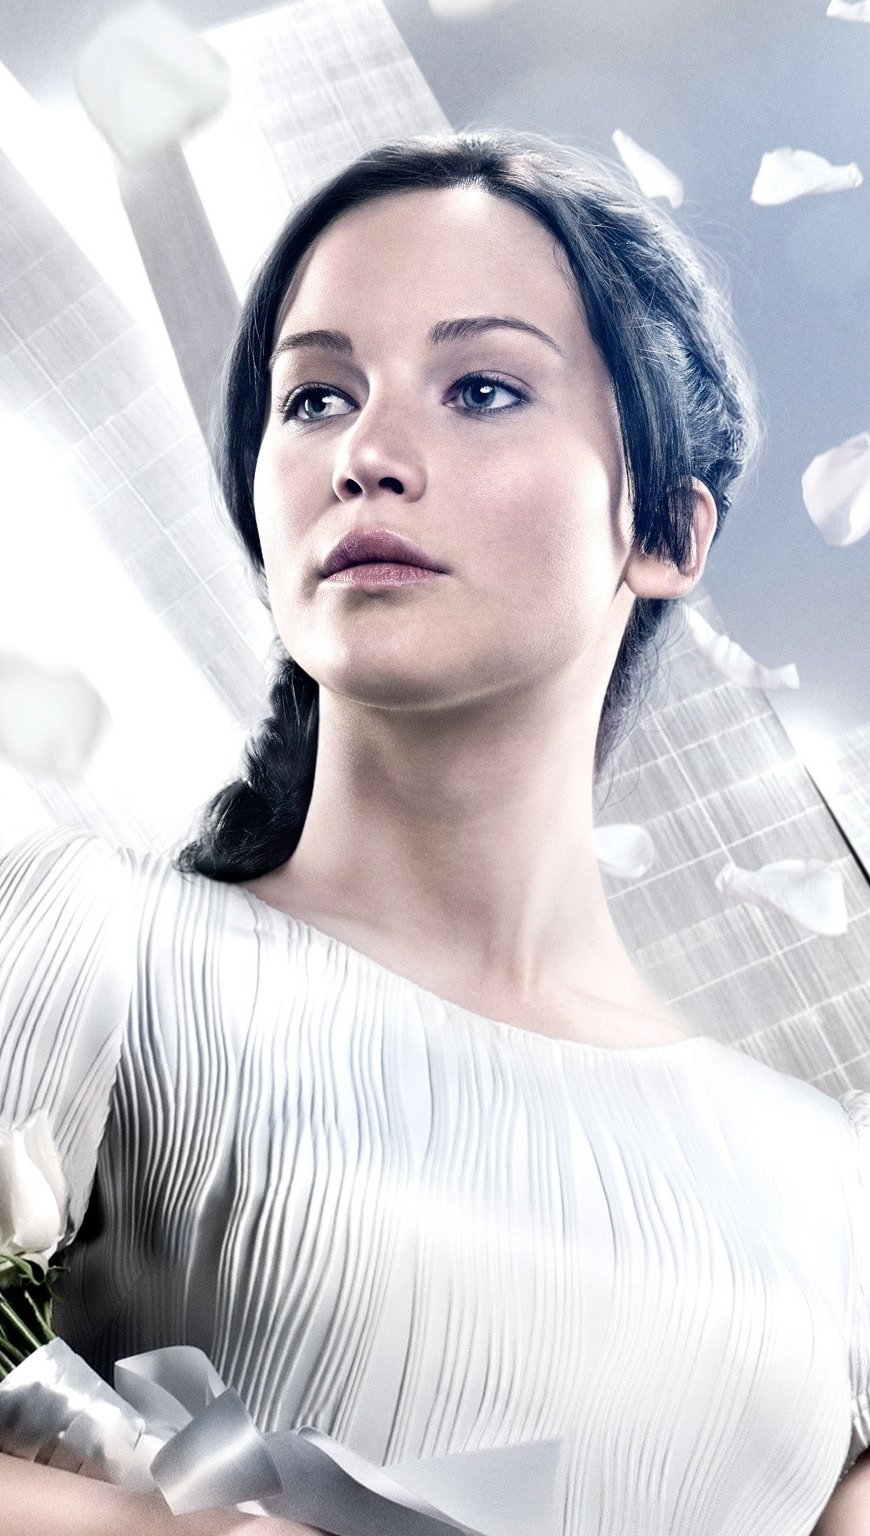 Fondos de pantalla Catching fire Vertical